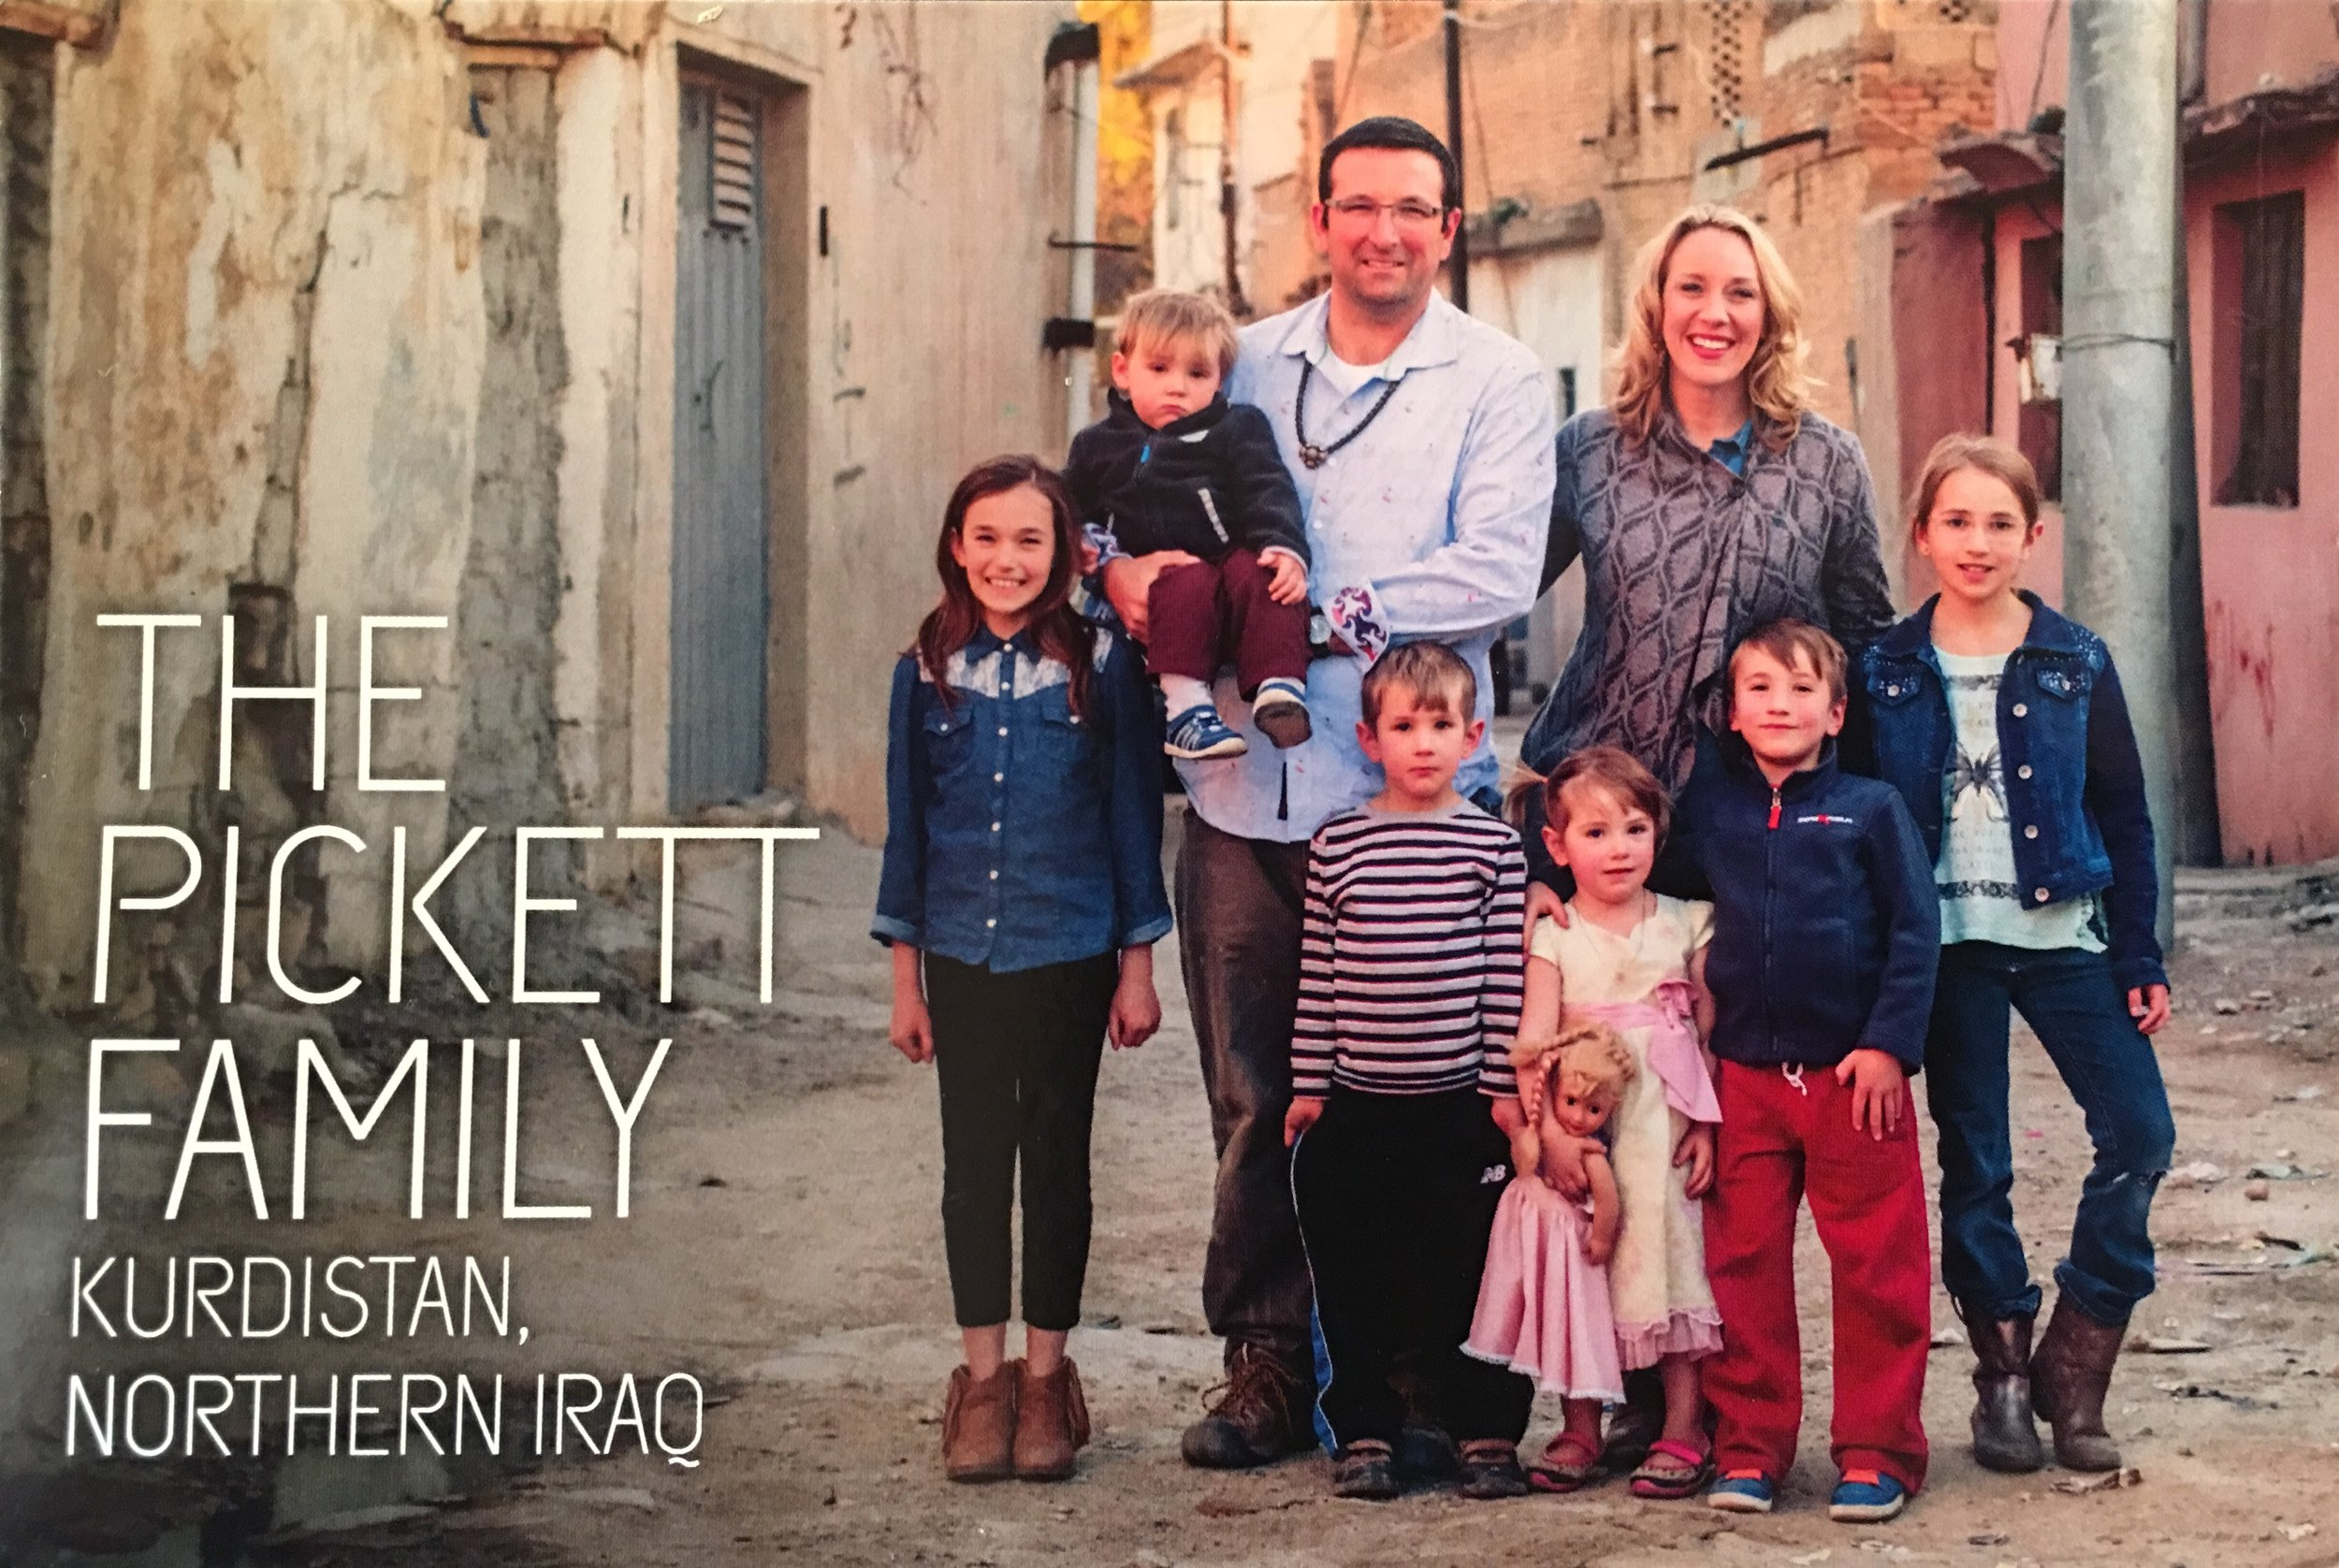 The Pickett Family, springtime in Iraq